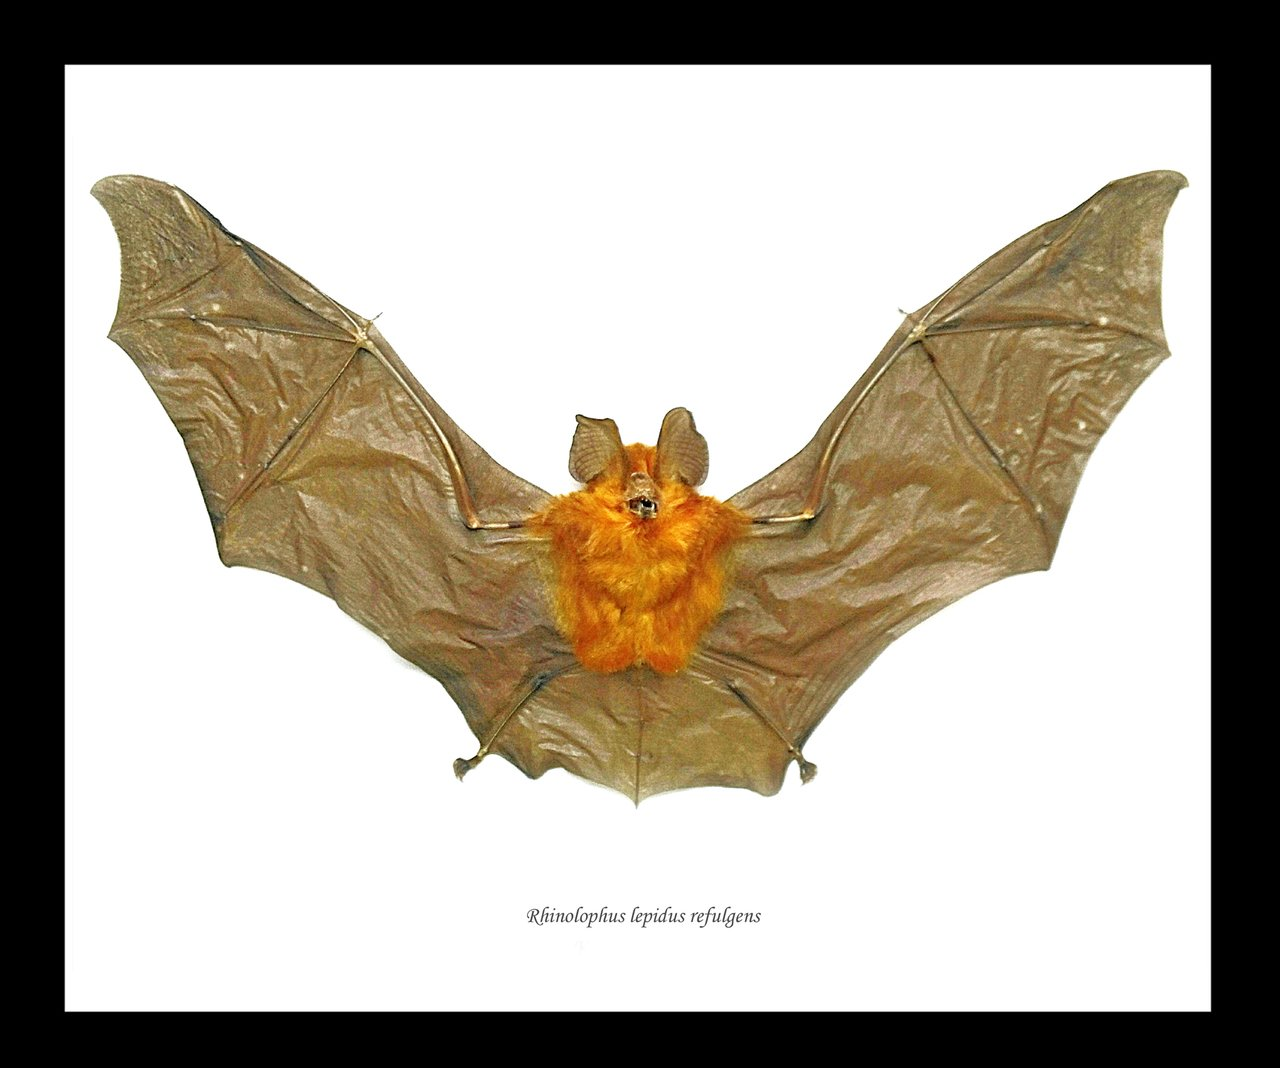 Framed Horseshoe Bat oddities for sale long beach los angeles oddity